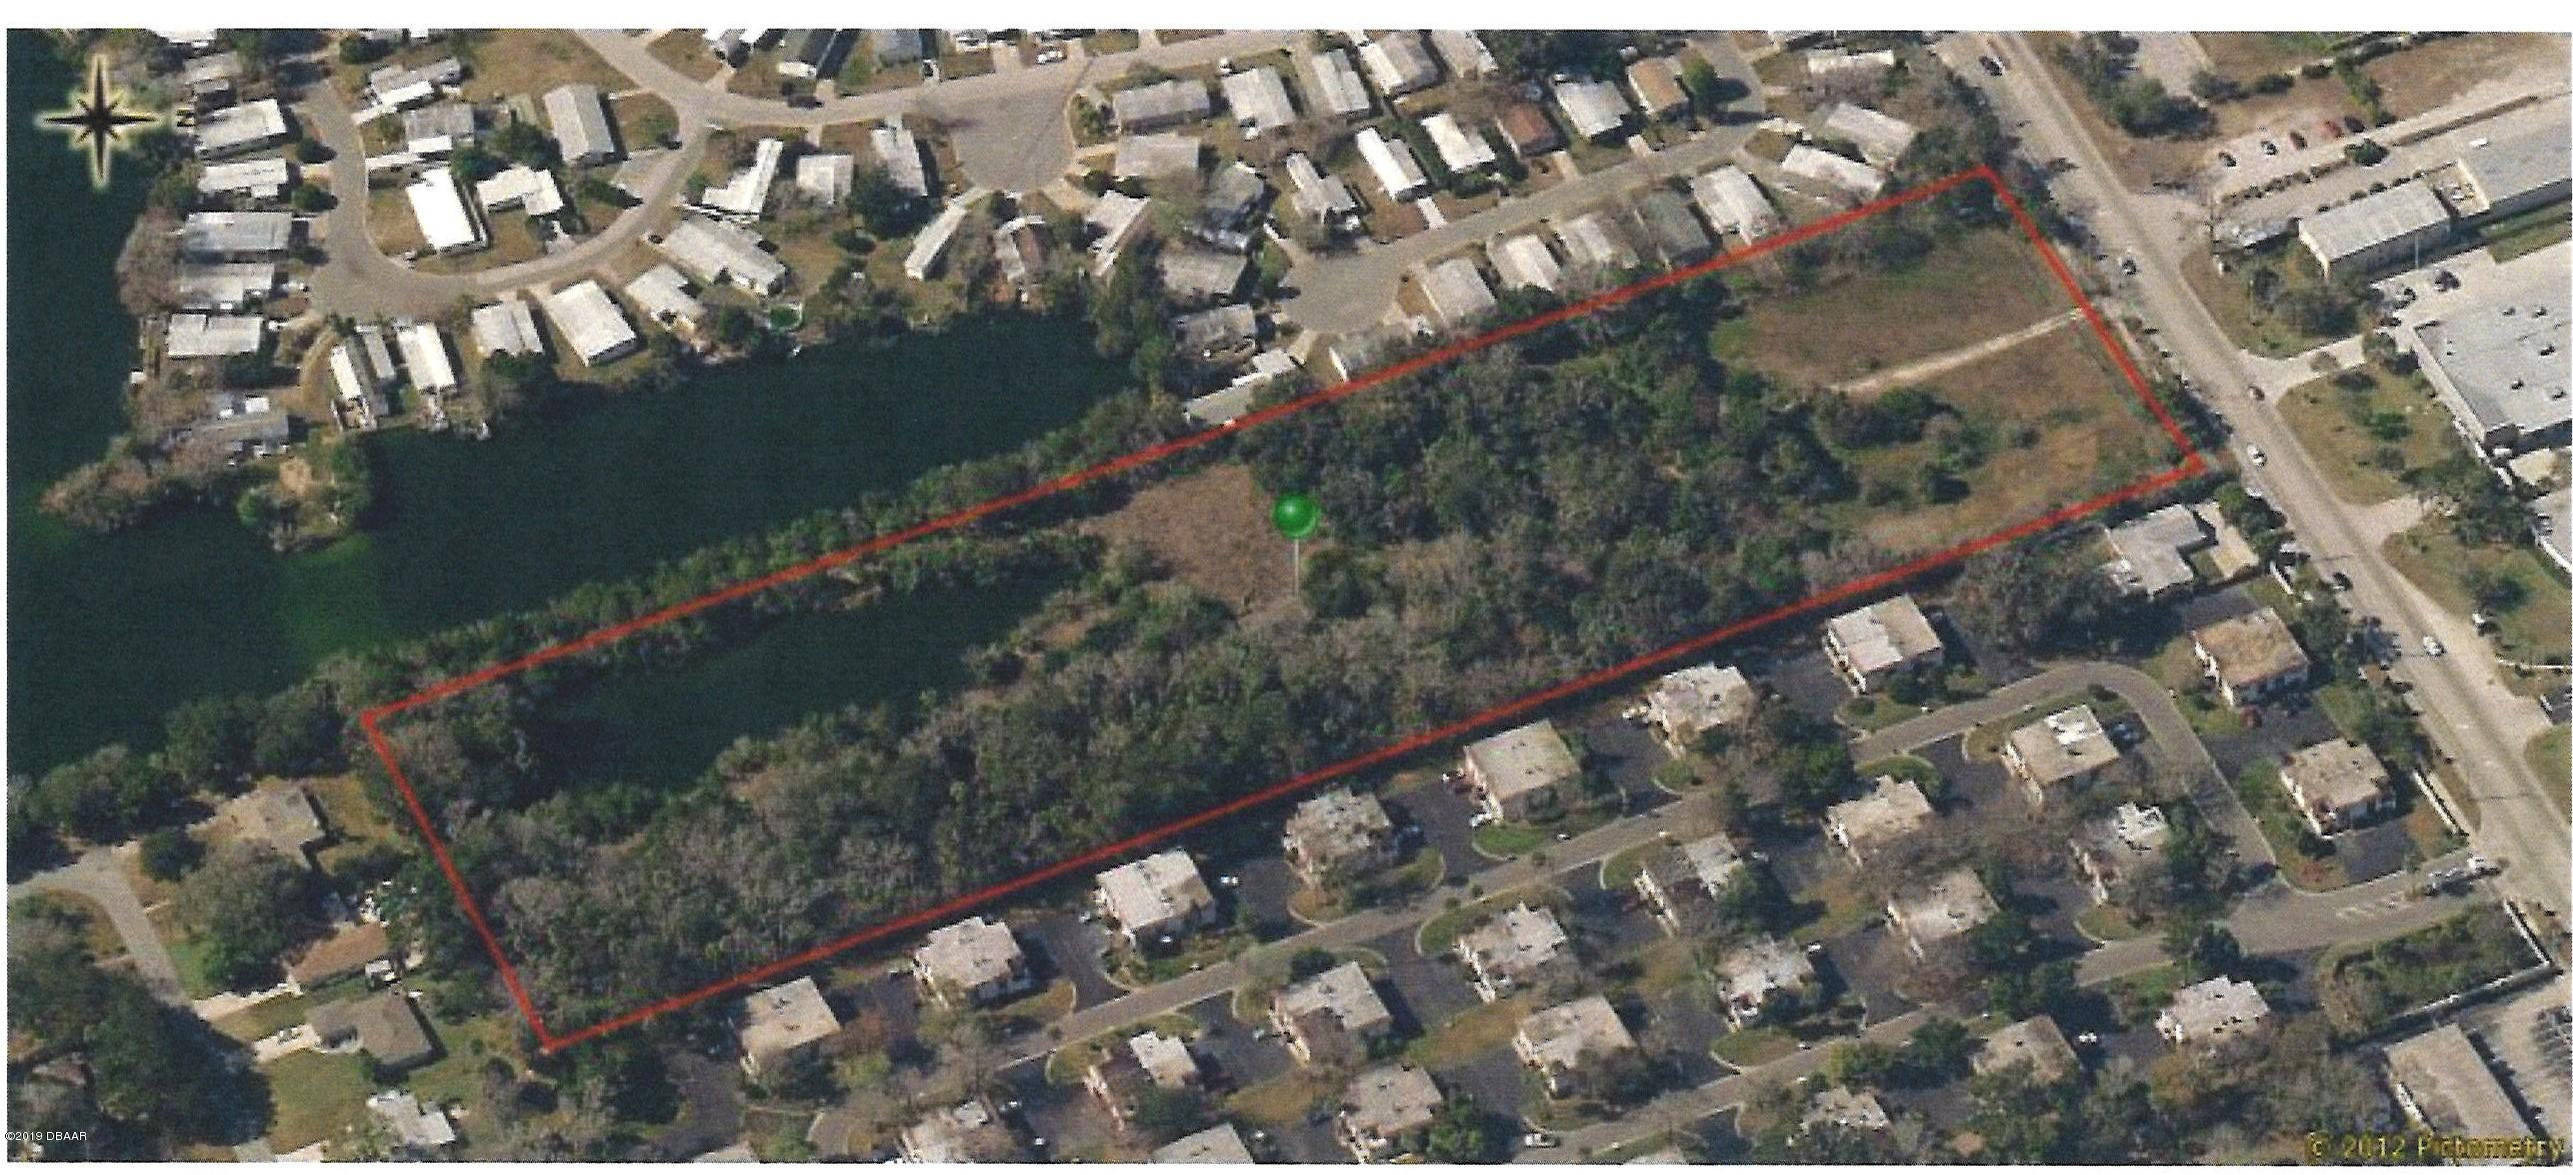 Details for 947 Big Tree Road, South Daytona, FL 32119